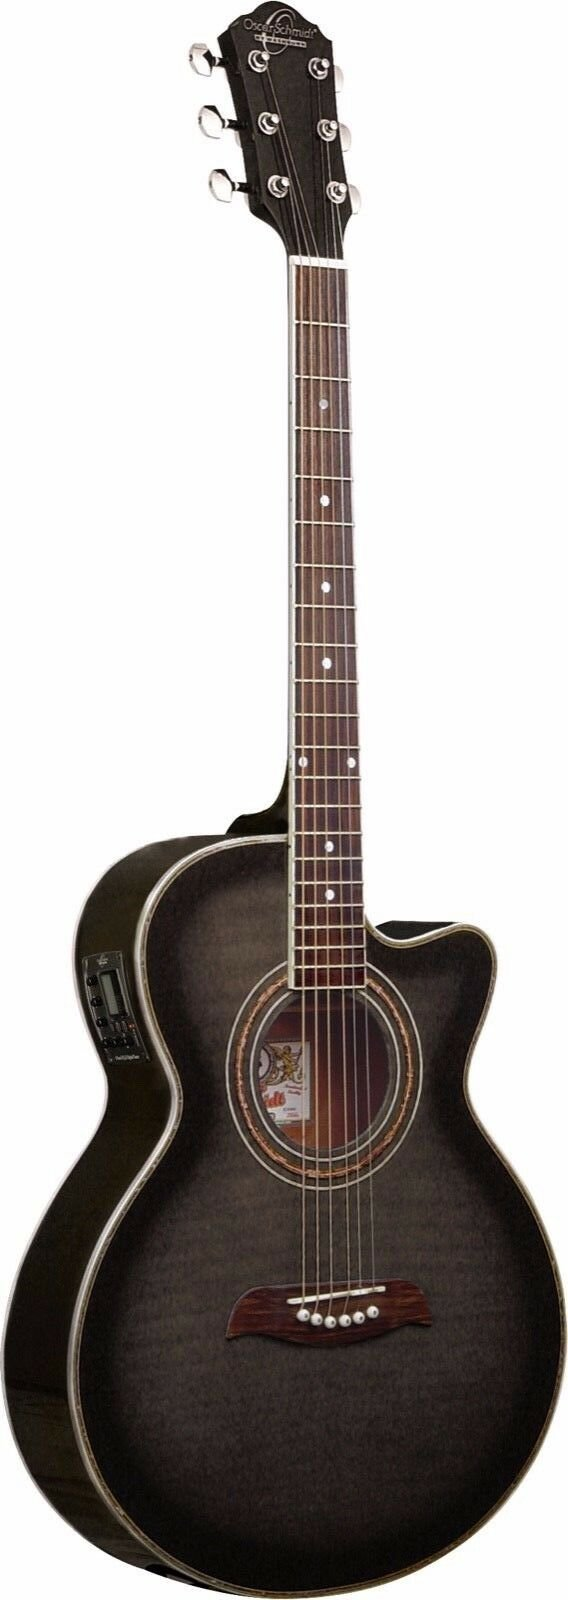 OSCAR SCHMIDT OG10CEFTB CONCERT THIN ACOUSTIC-ELECTRIC GUITAR FLAME TR. BLACK